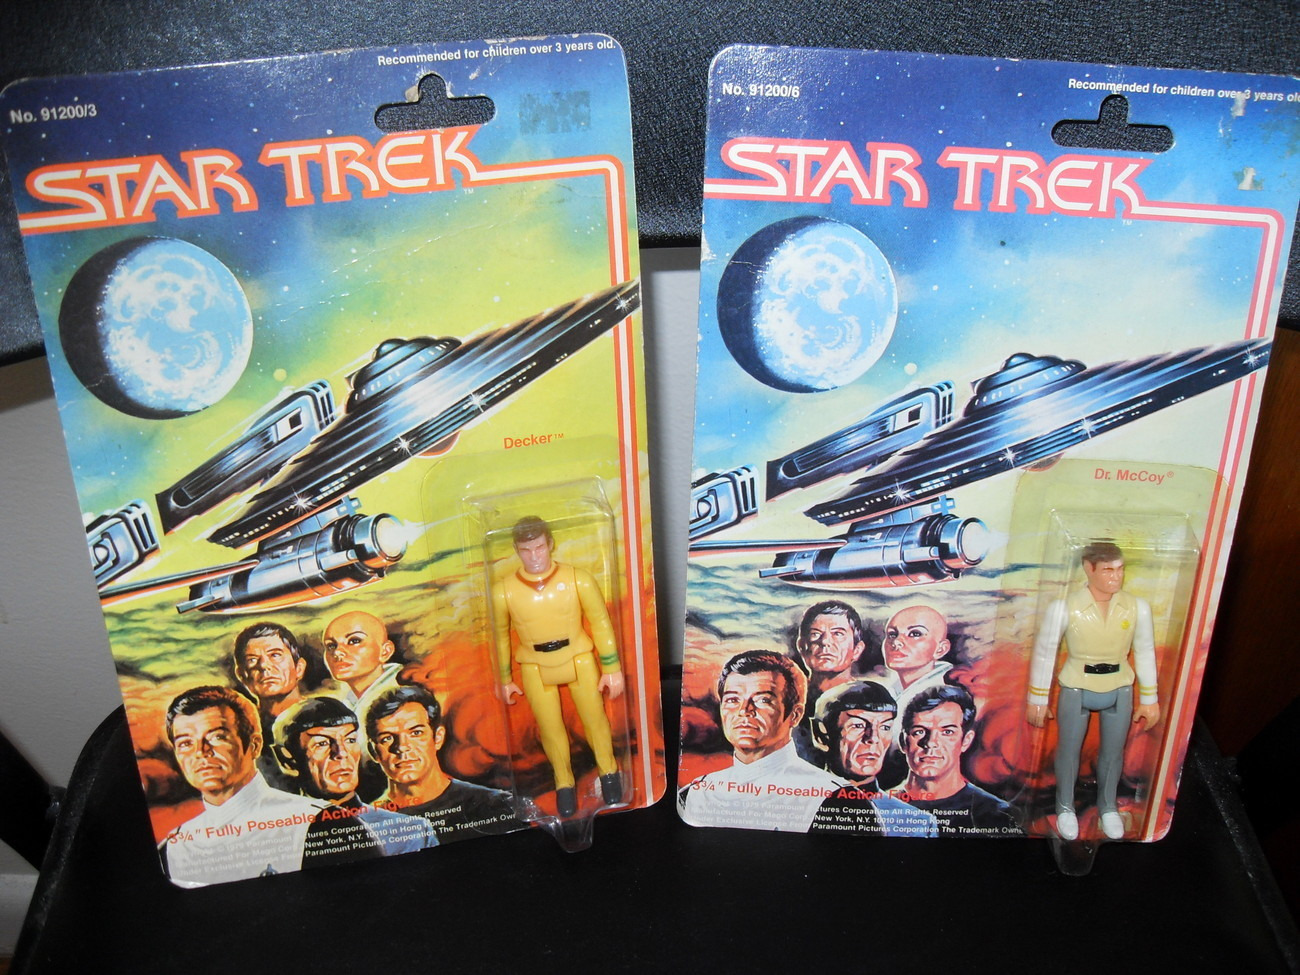 1979 Mego Star Trek Figures Dr. McCoy and Decker in the Pack